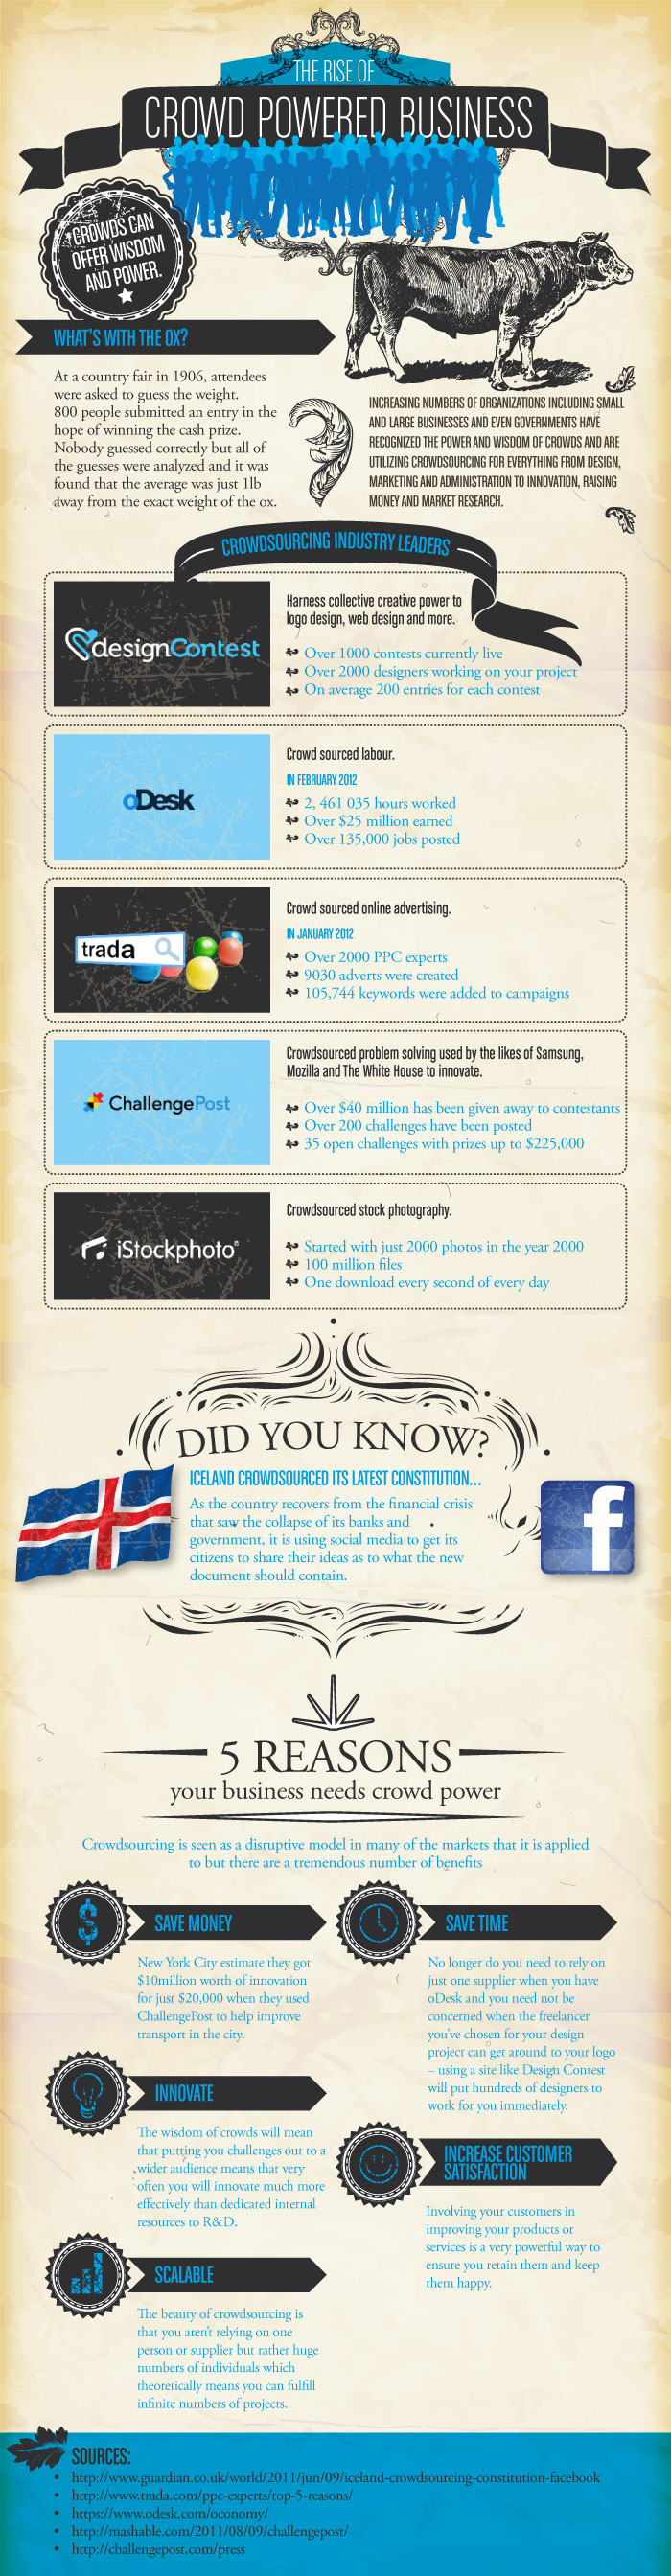 designcontest crowdpower The Rise of Crowd Sourcing For Business (Infographic)